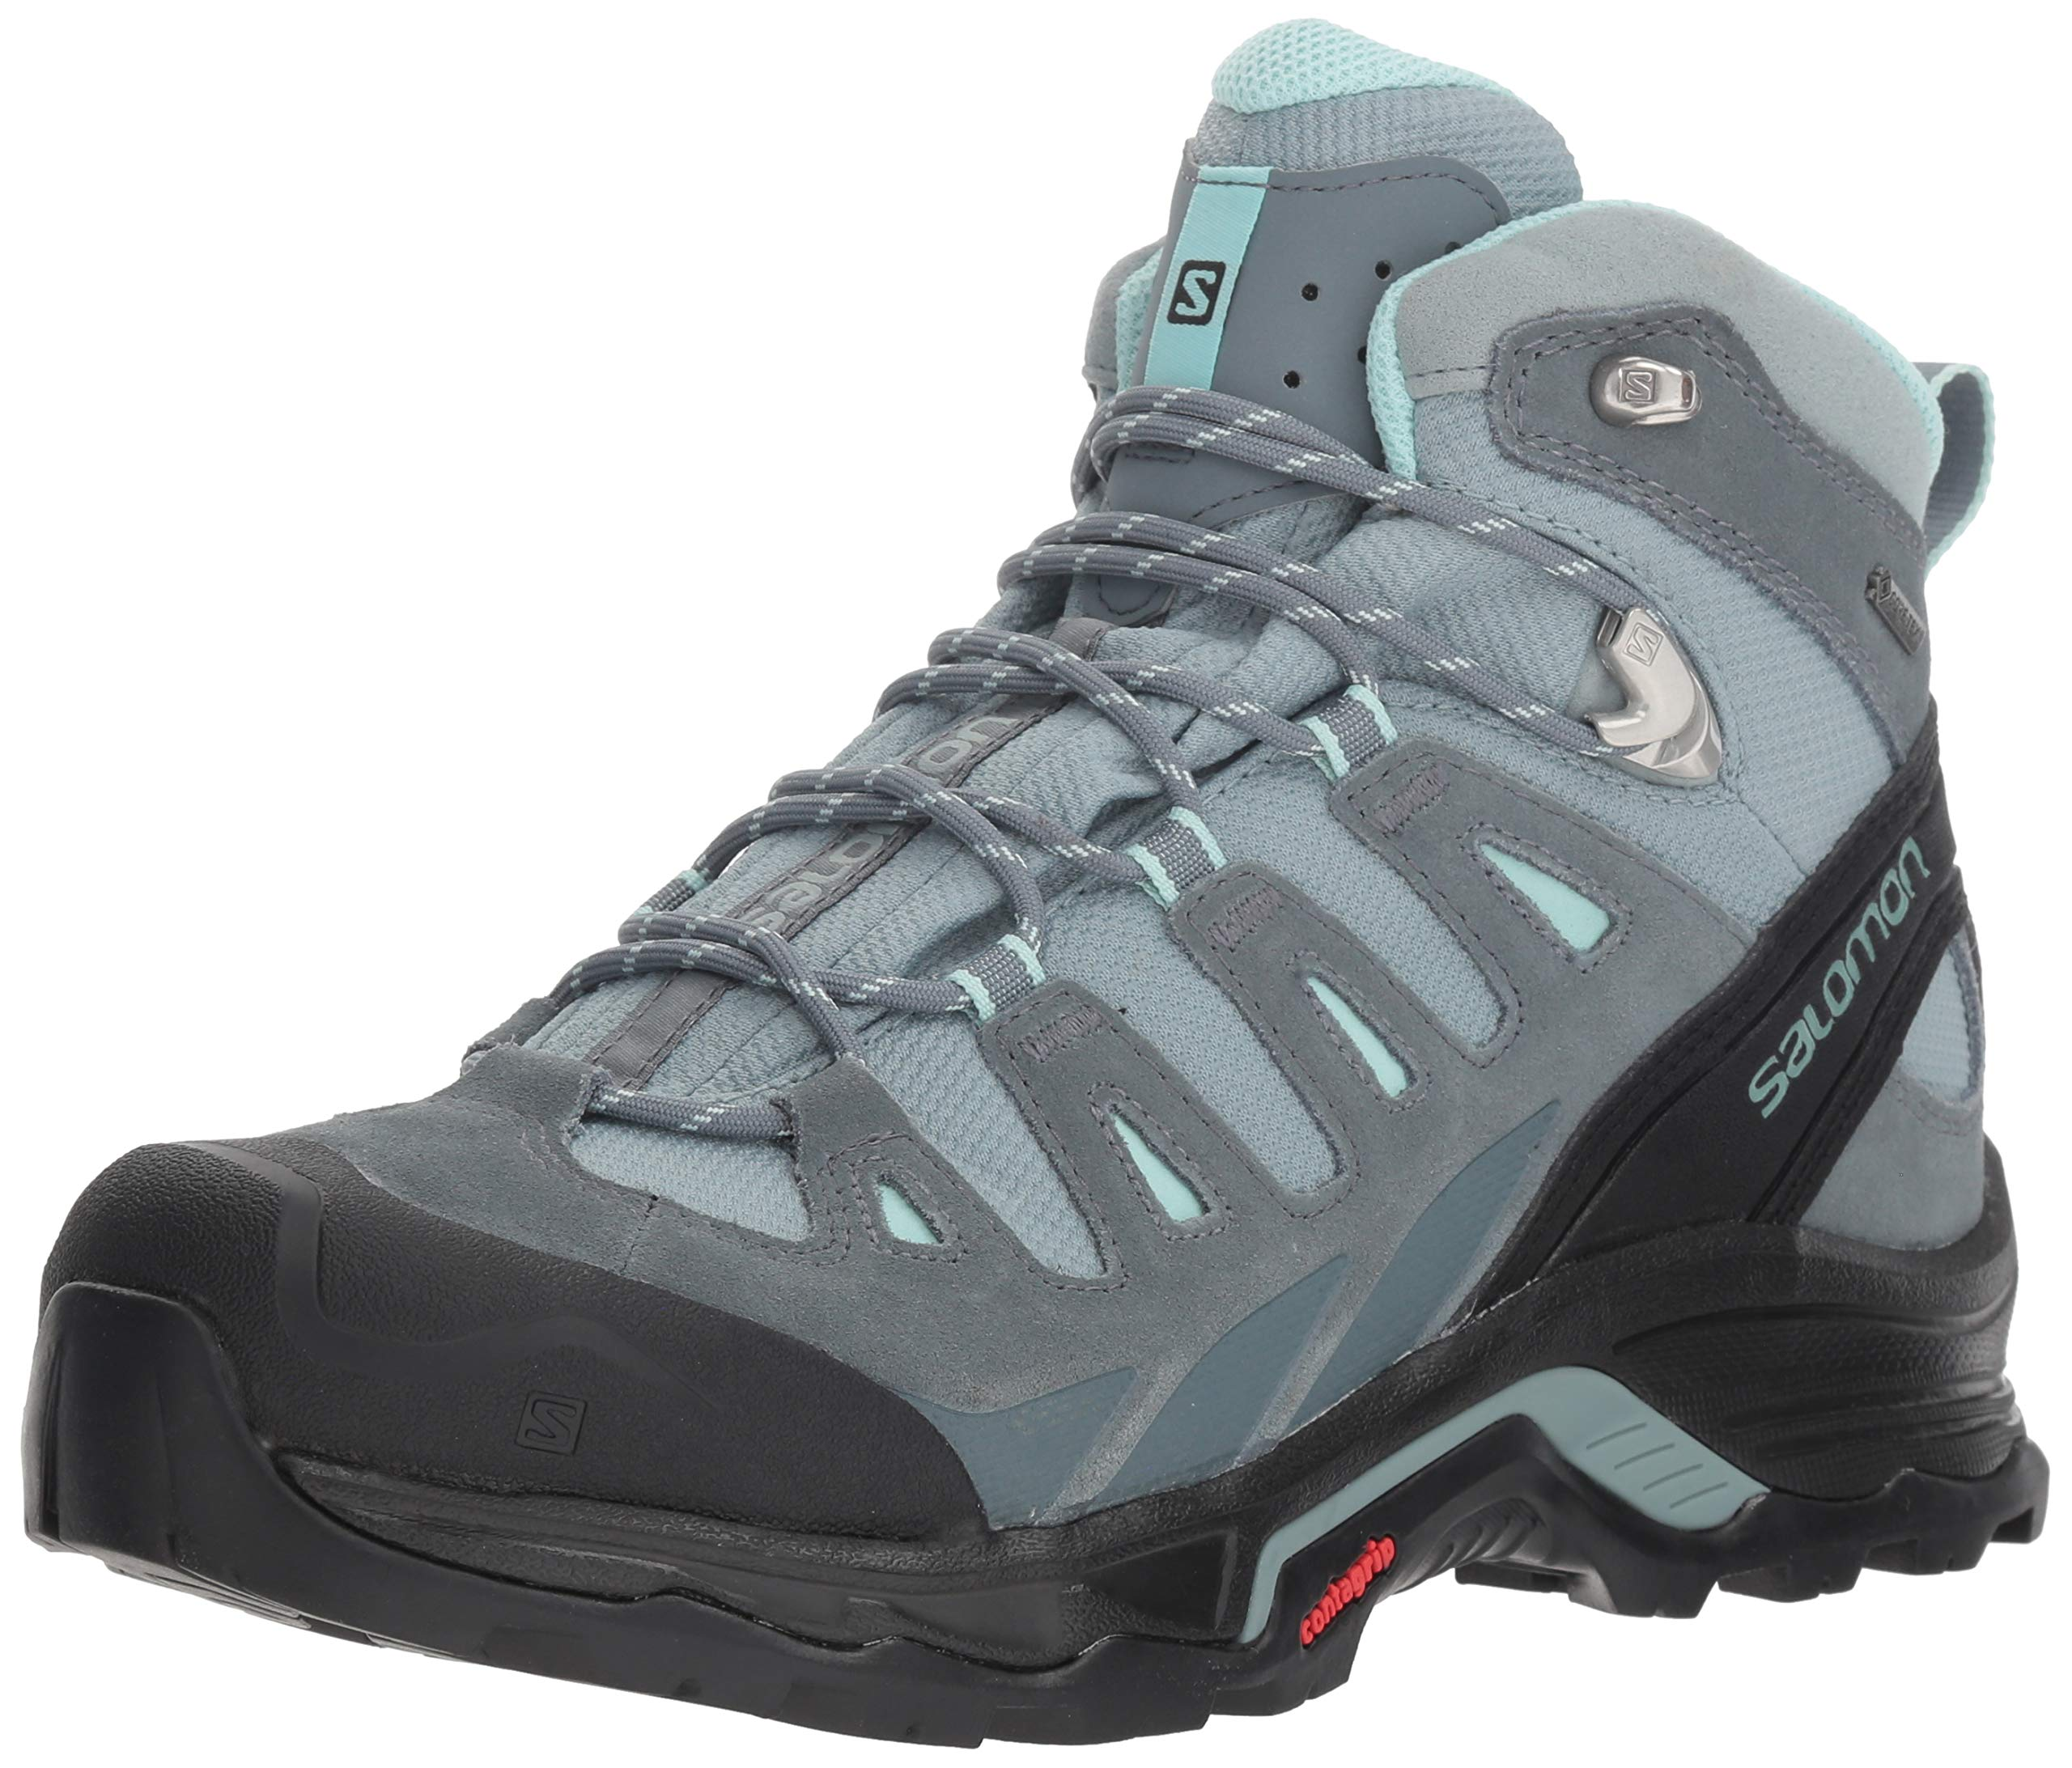 SALOMON Women's Quest Prime GTX W Backpacking Boot, Lead/Stormy Weather/Eggshell Blue, 8.5 M US by SALOMON